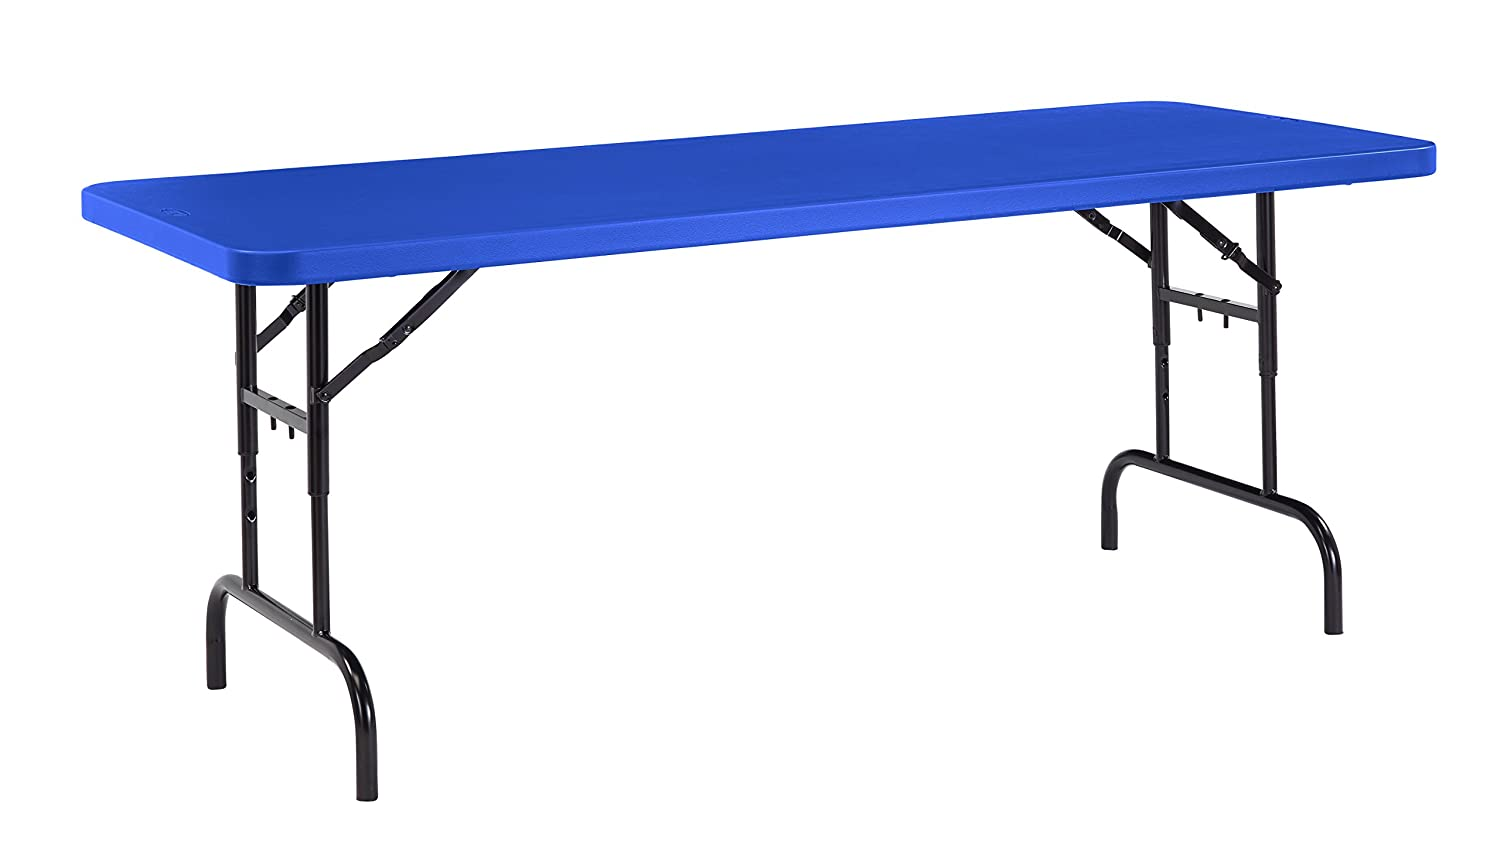 NPS 30 x 72 Height Adjustable Heavy Duty Folding Table, Blue